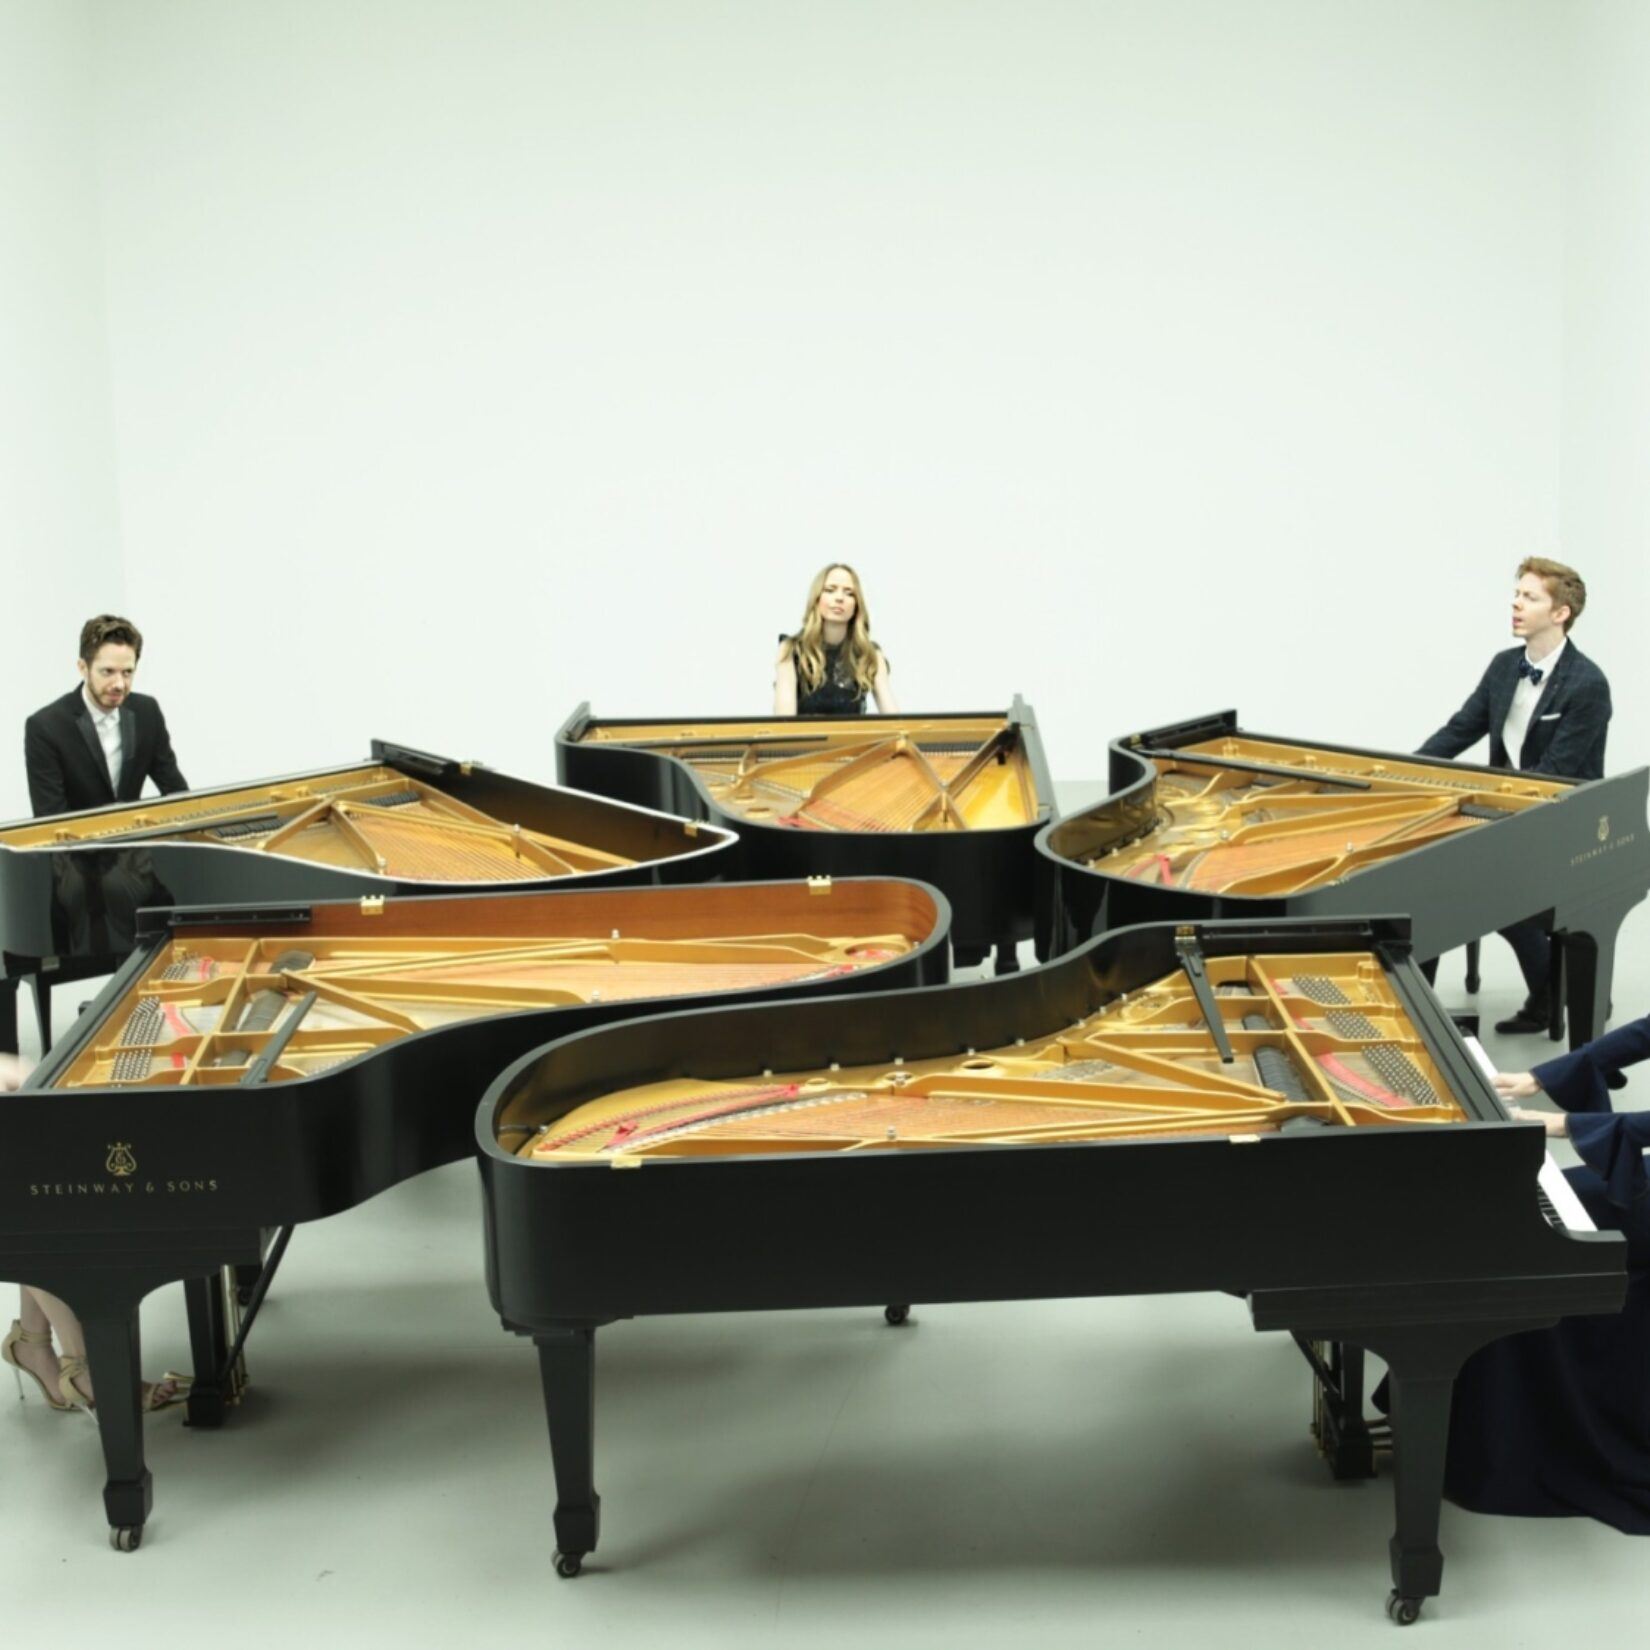 Five grand pianos are clustered together so the pianists form a semi-circle